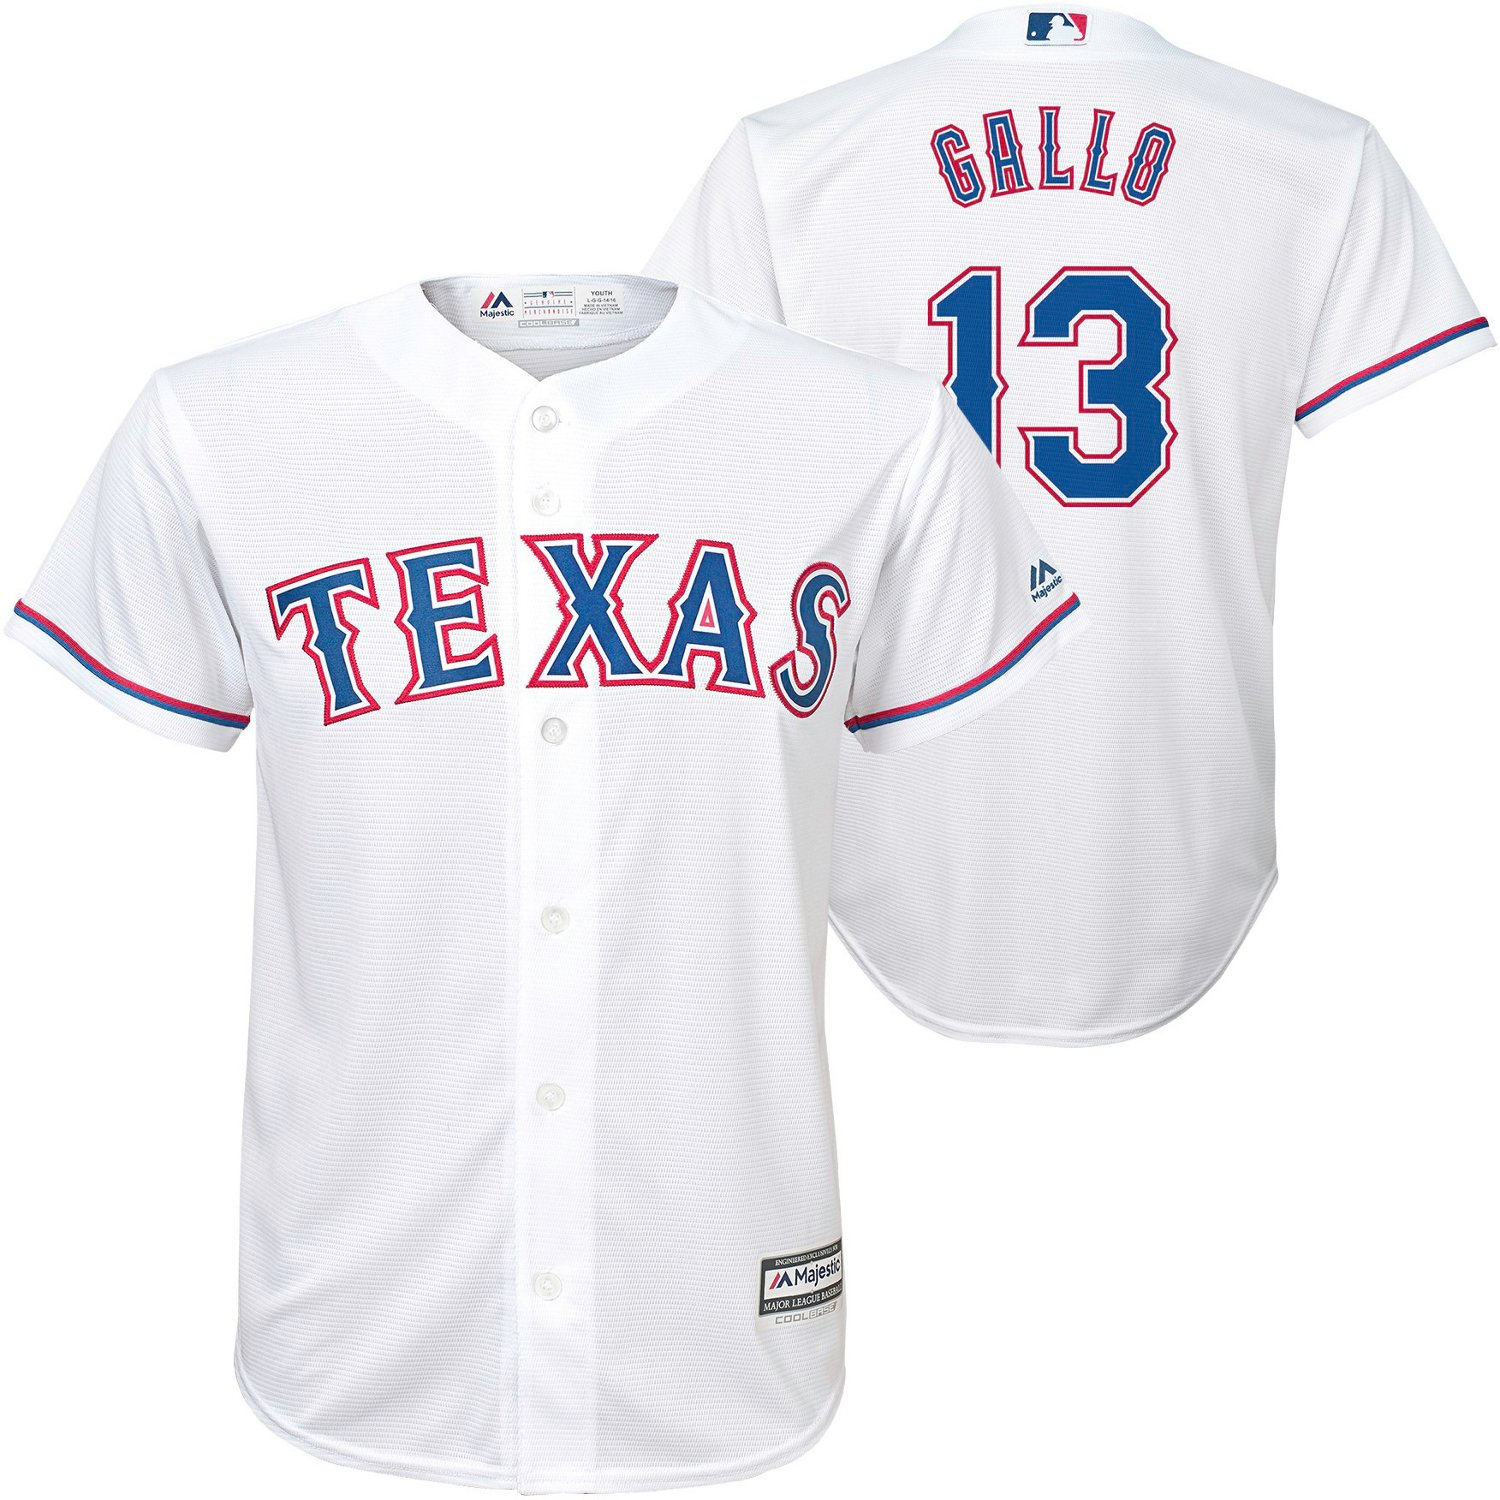 buy popular 9bc93 77880 MLB Boys' Texas Rangers Replica Jersey